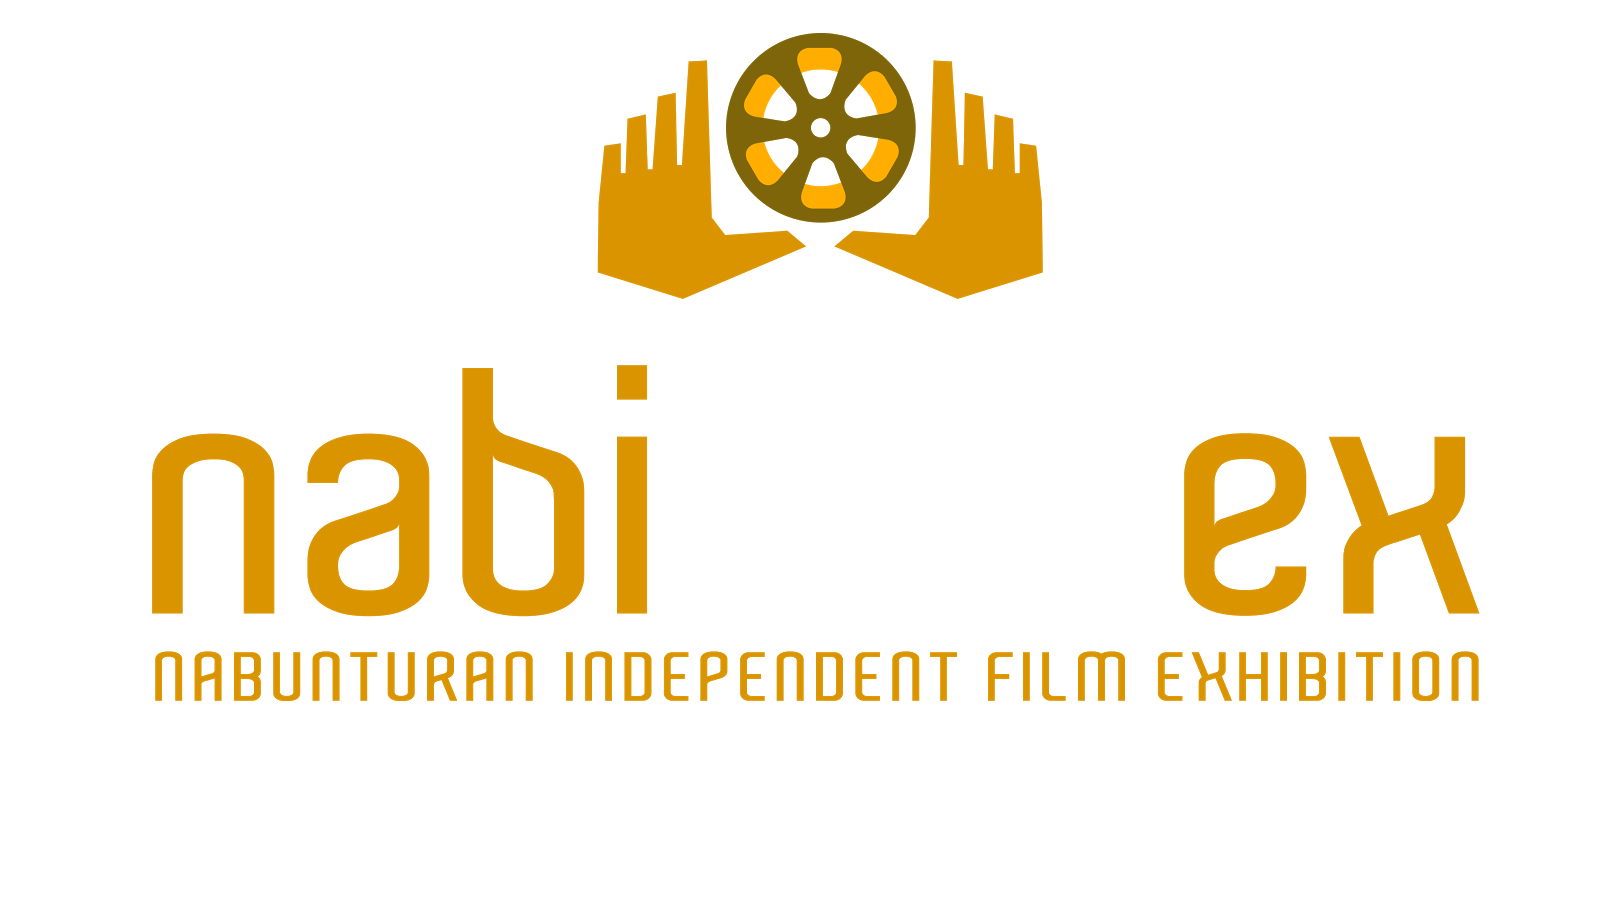 NABIFILMEX: NABUNTURAN INDEPENDENT FILM EXHIBITION